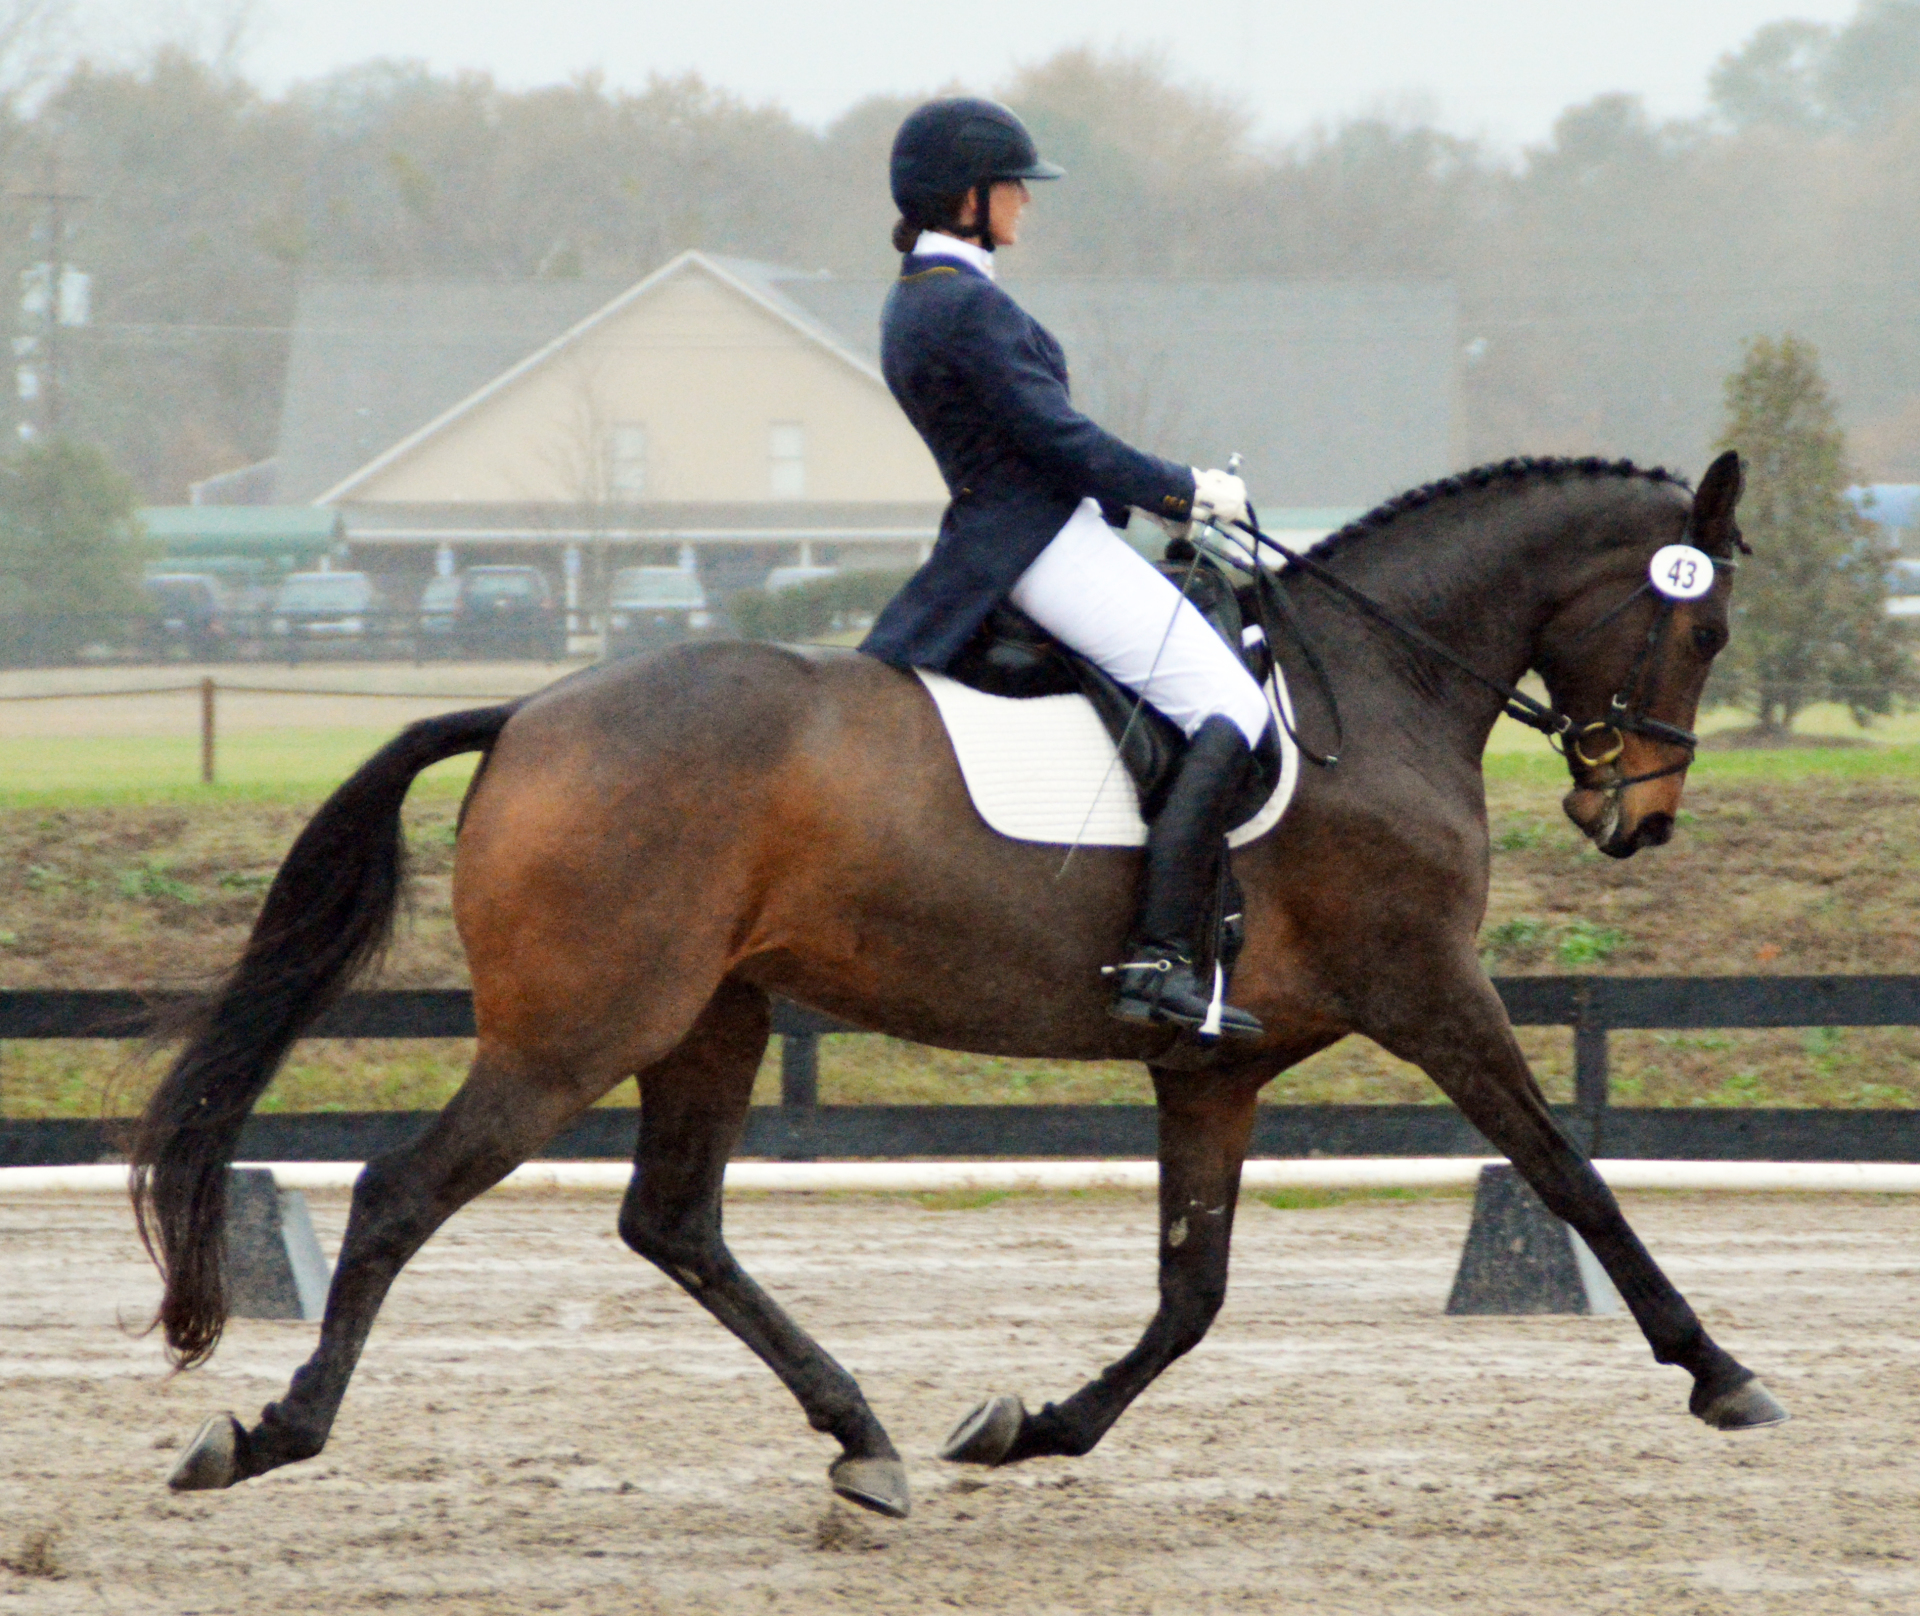 elaine lash owensby training dressage horse Wonderland aiken south carolina